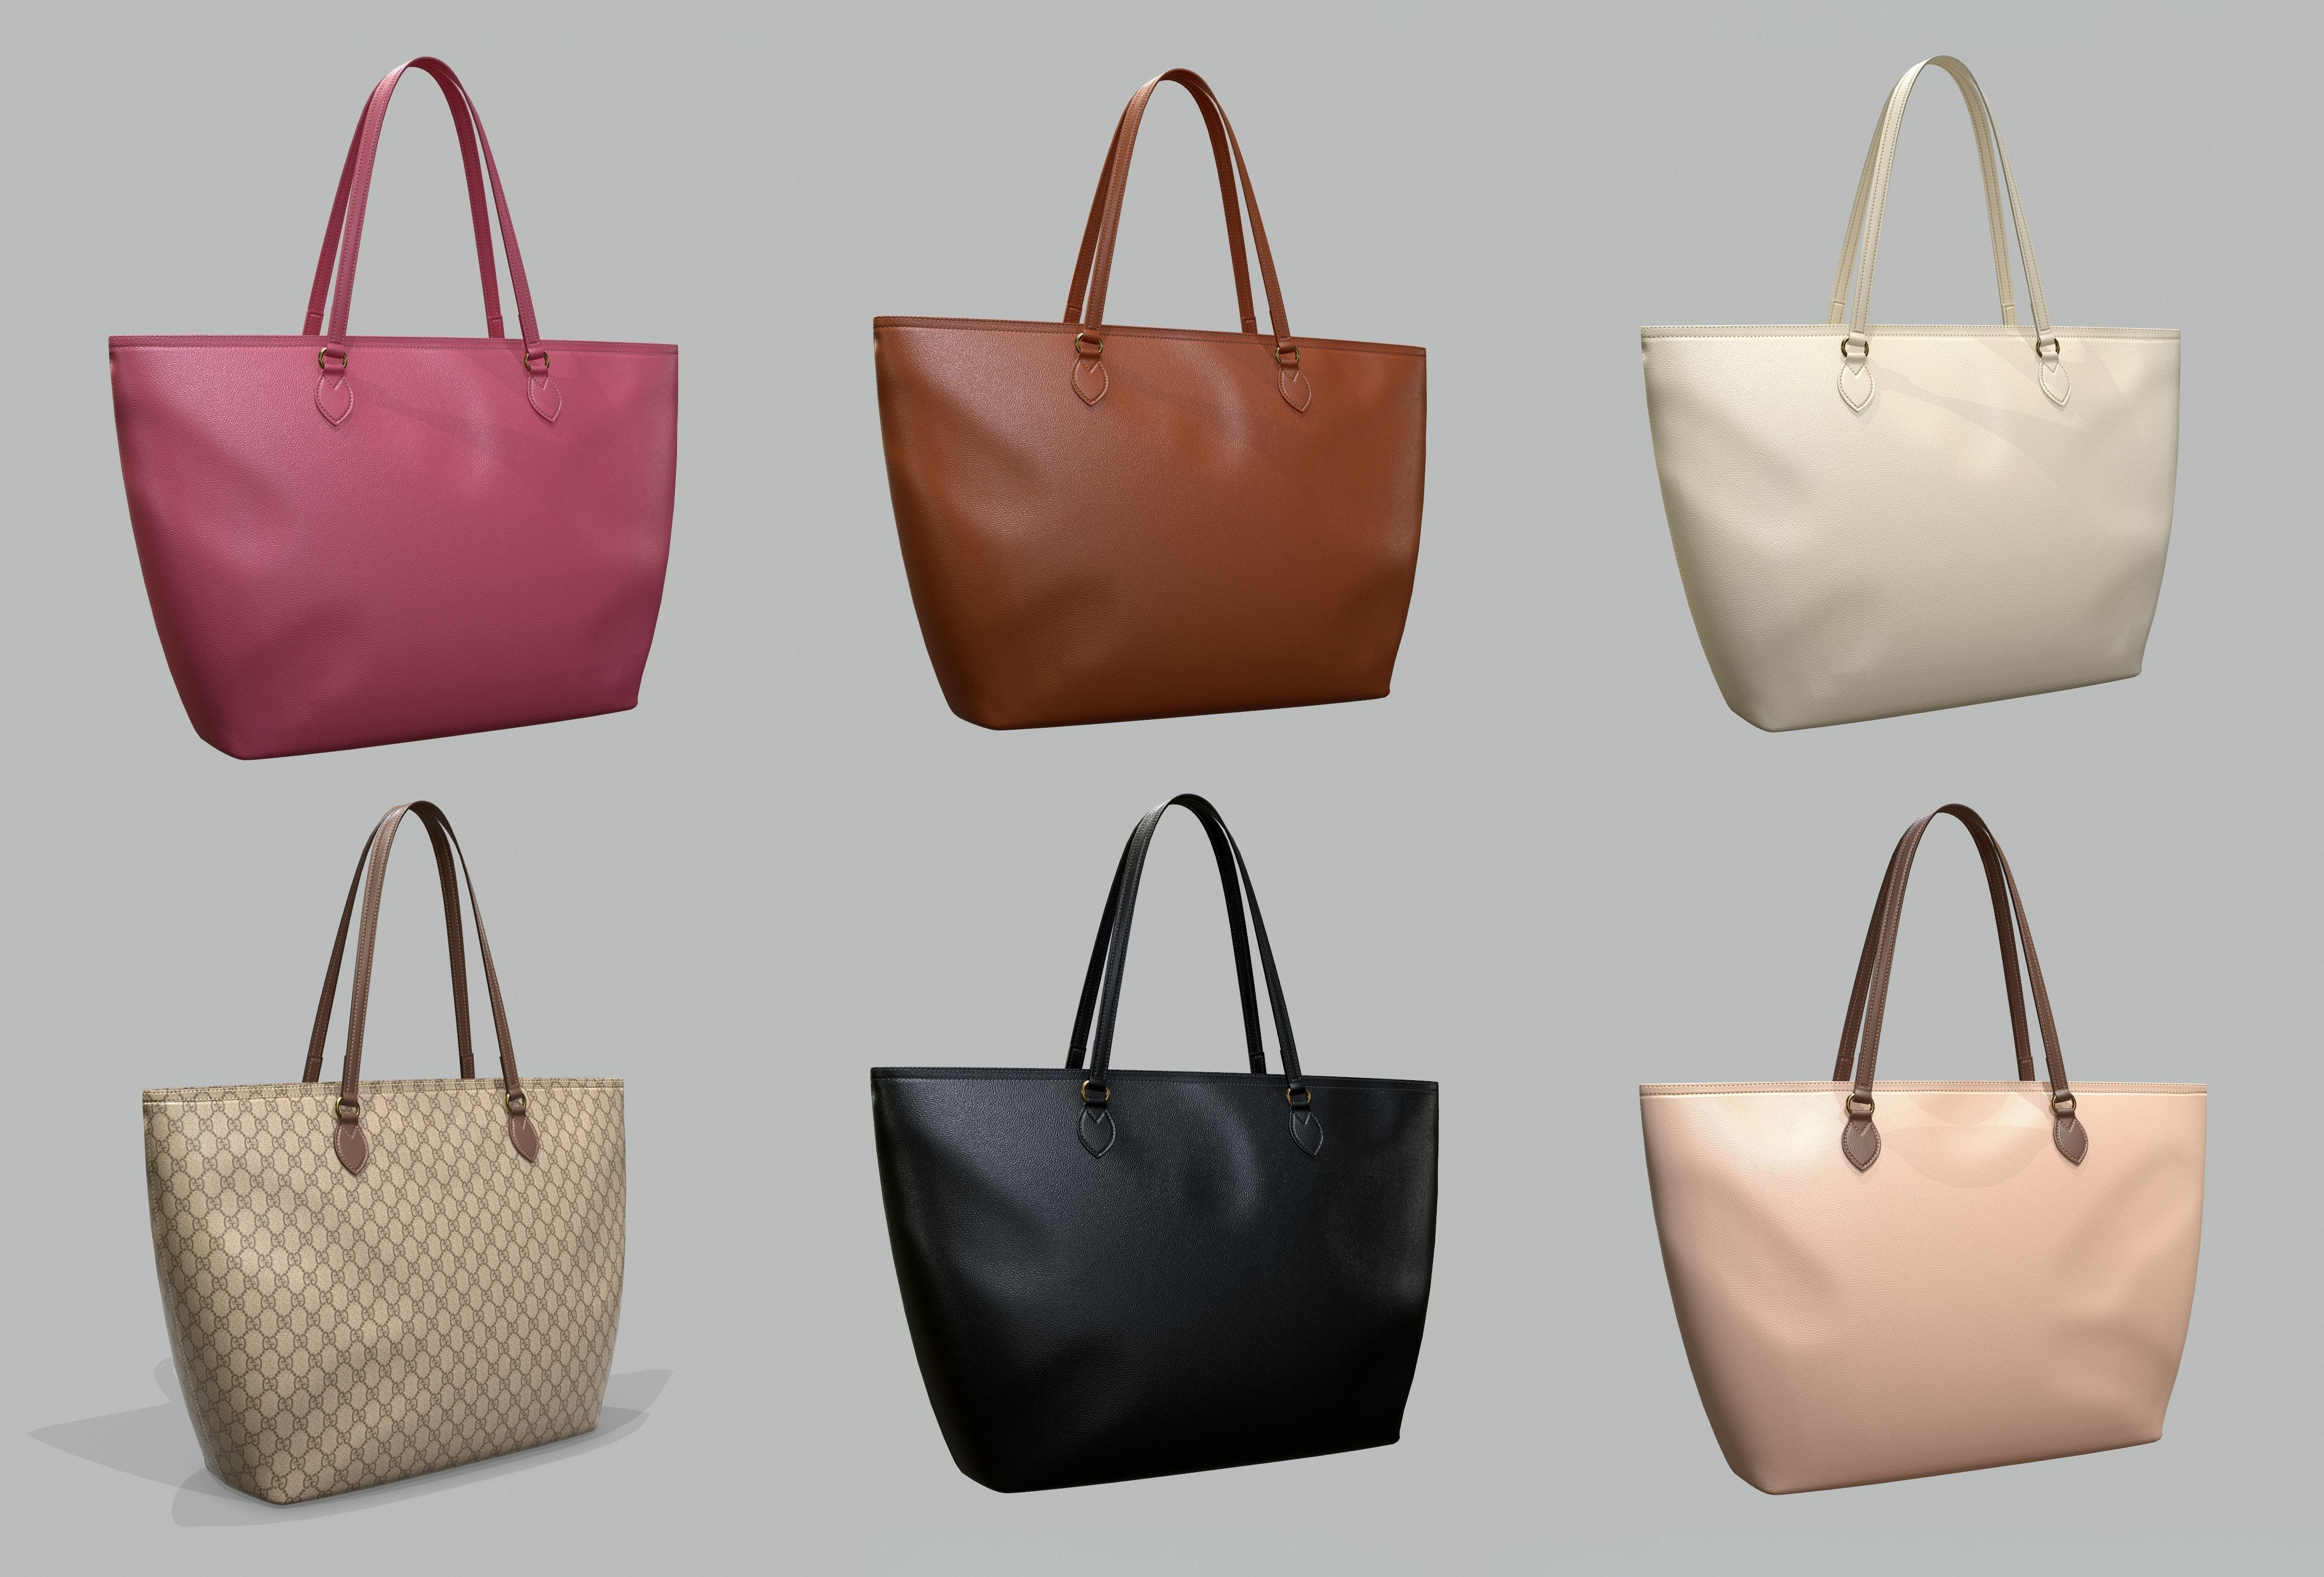 Gucci Women Ophidia GG Medium Tote Bag 6 colors Leather